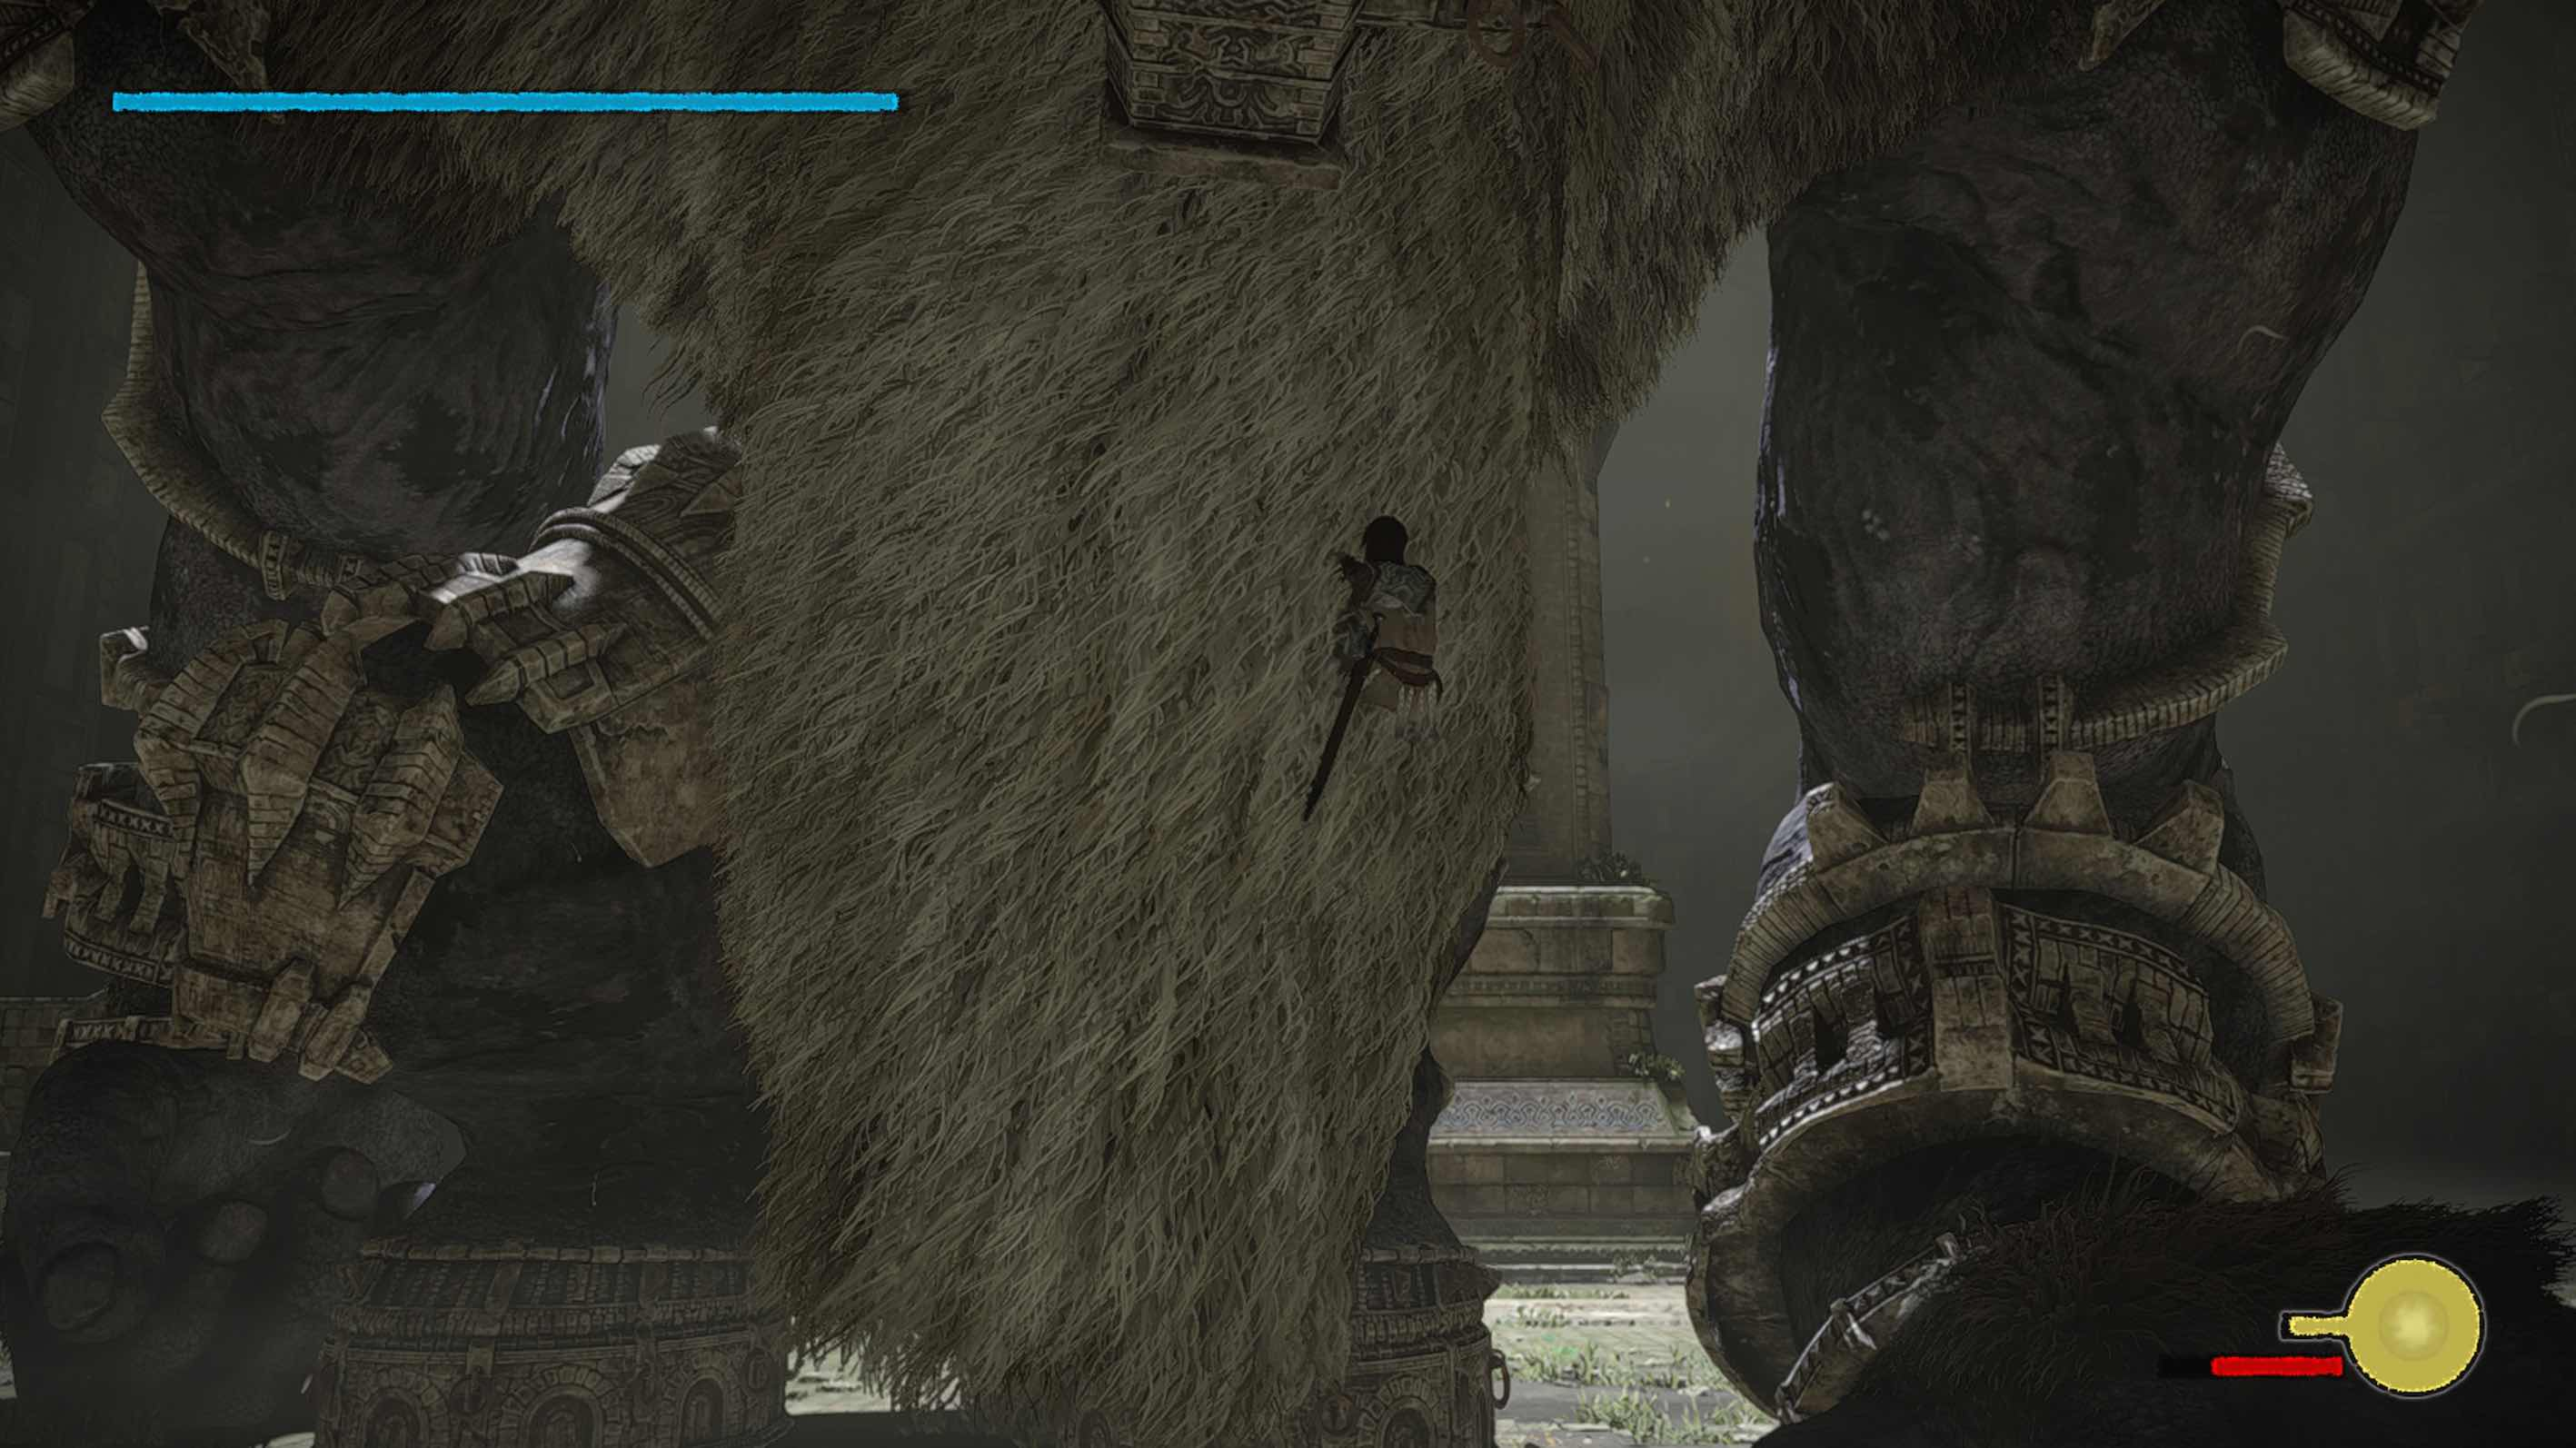 Shadow_of_the_Colossus_Coloso_6_4